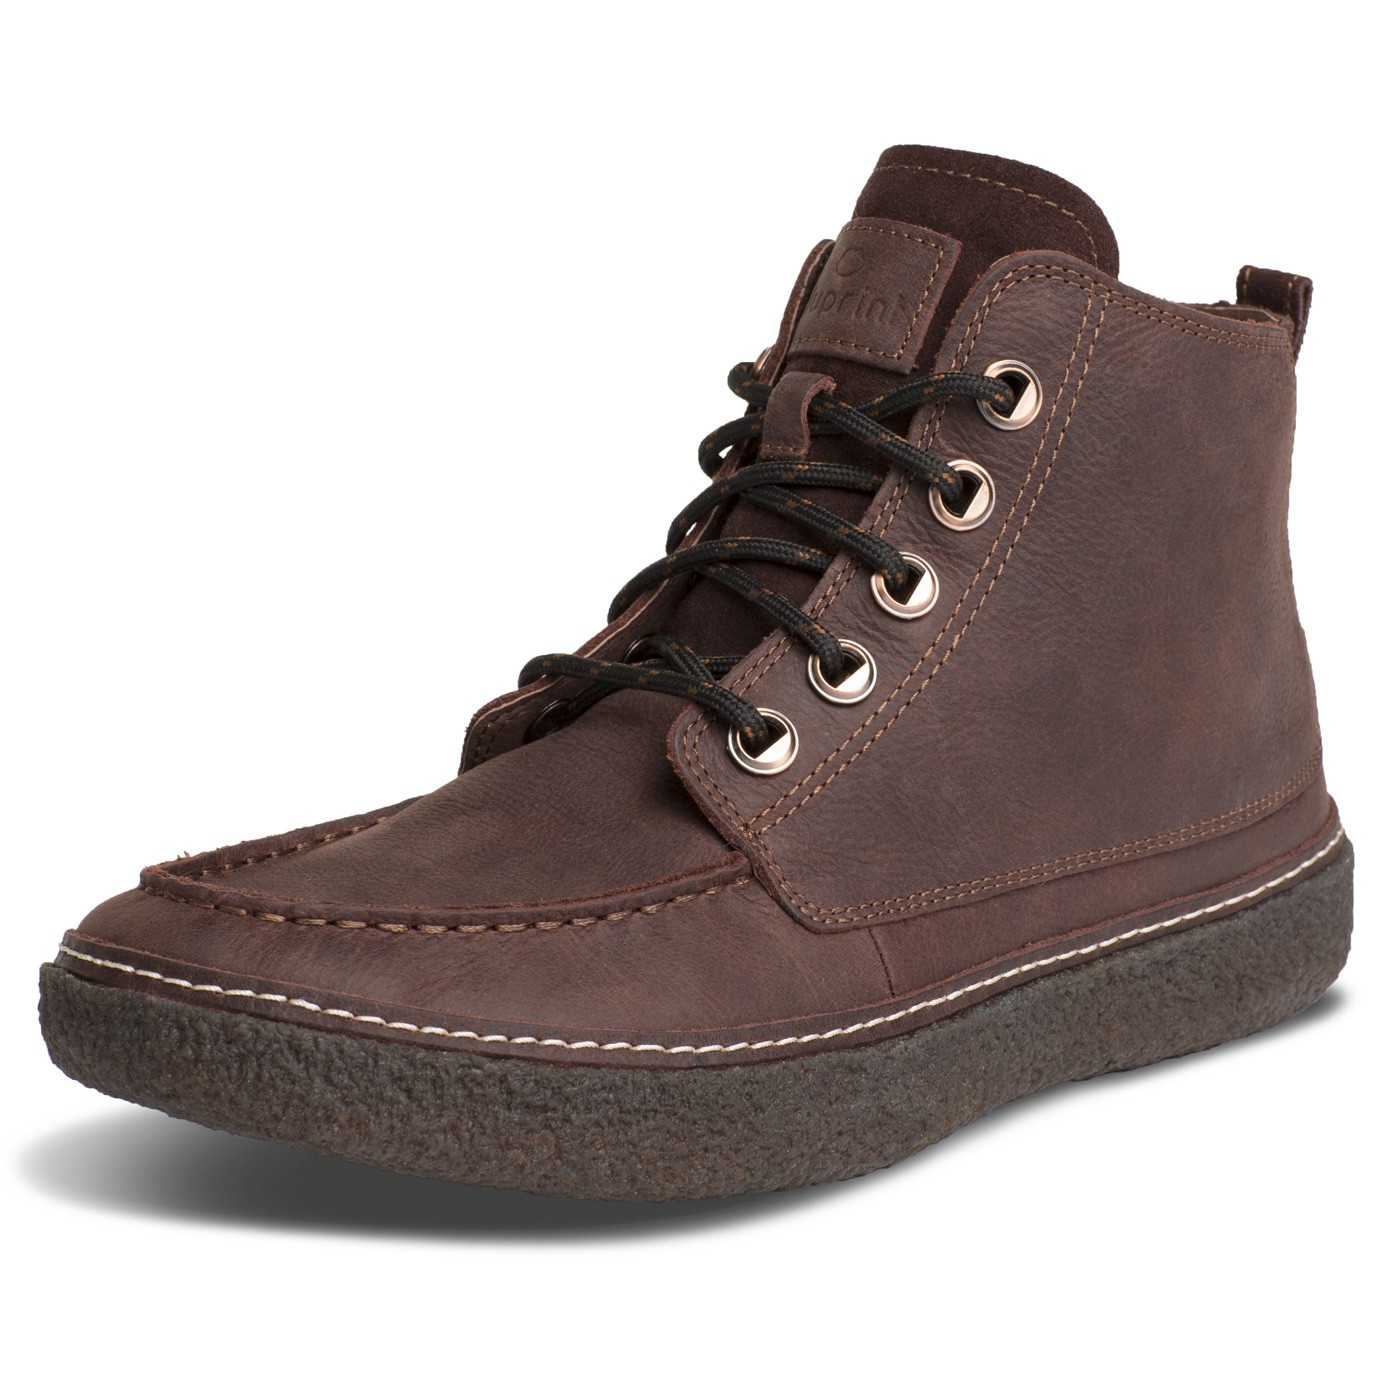 Best Steps for the Caring and Waterproofing of Your Leather Shoes